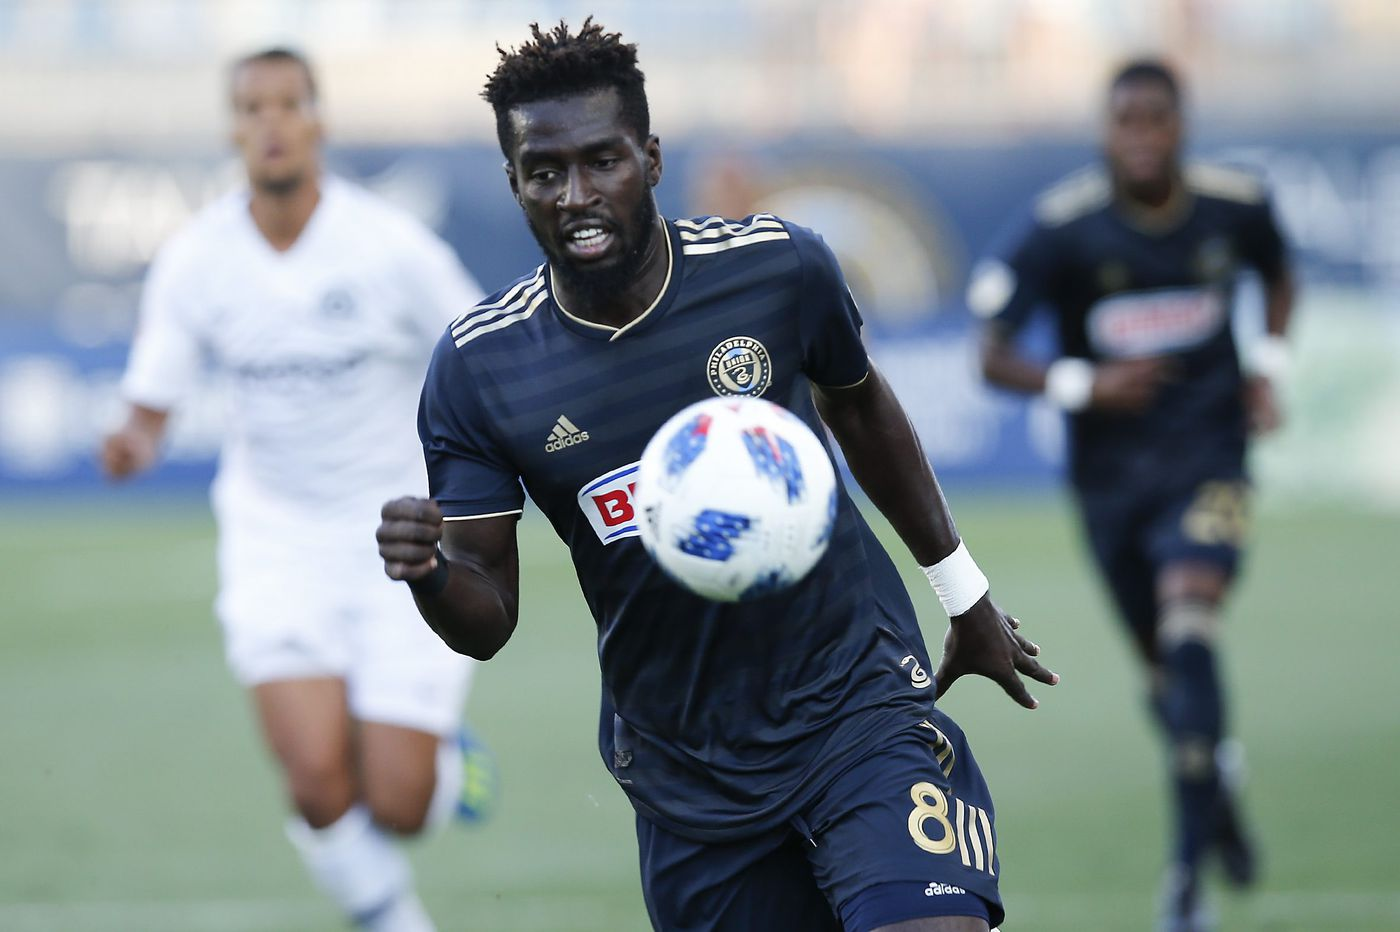 Union's Derrick Jones called up to U.S. under-23 national team; Auston Trusty stays home